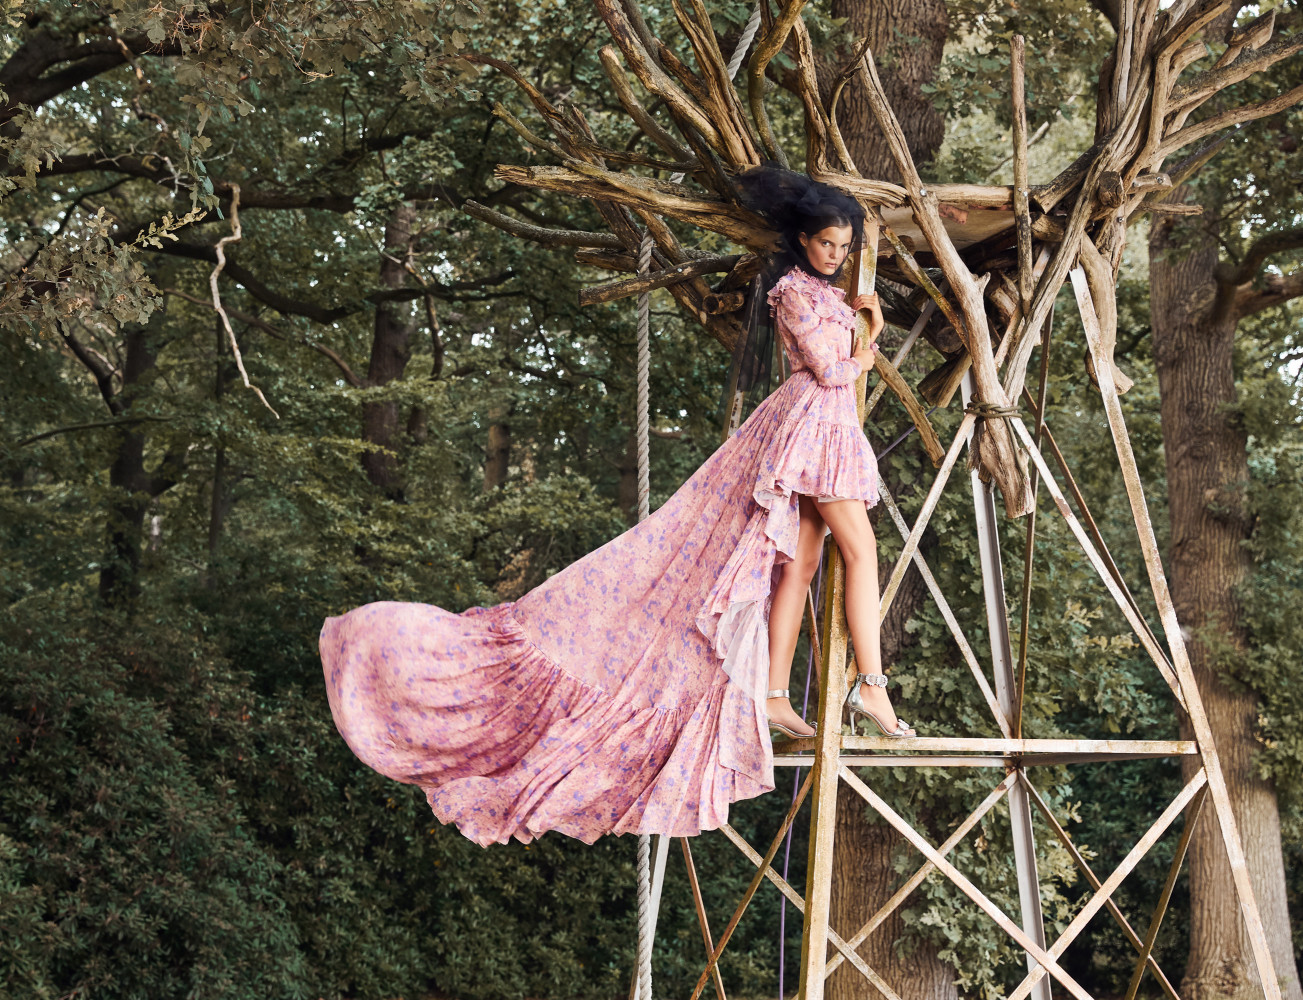 Michelle for InStyle Magazine